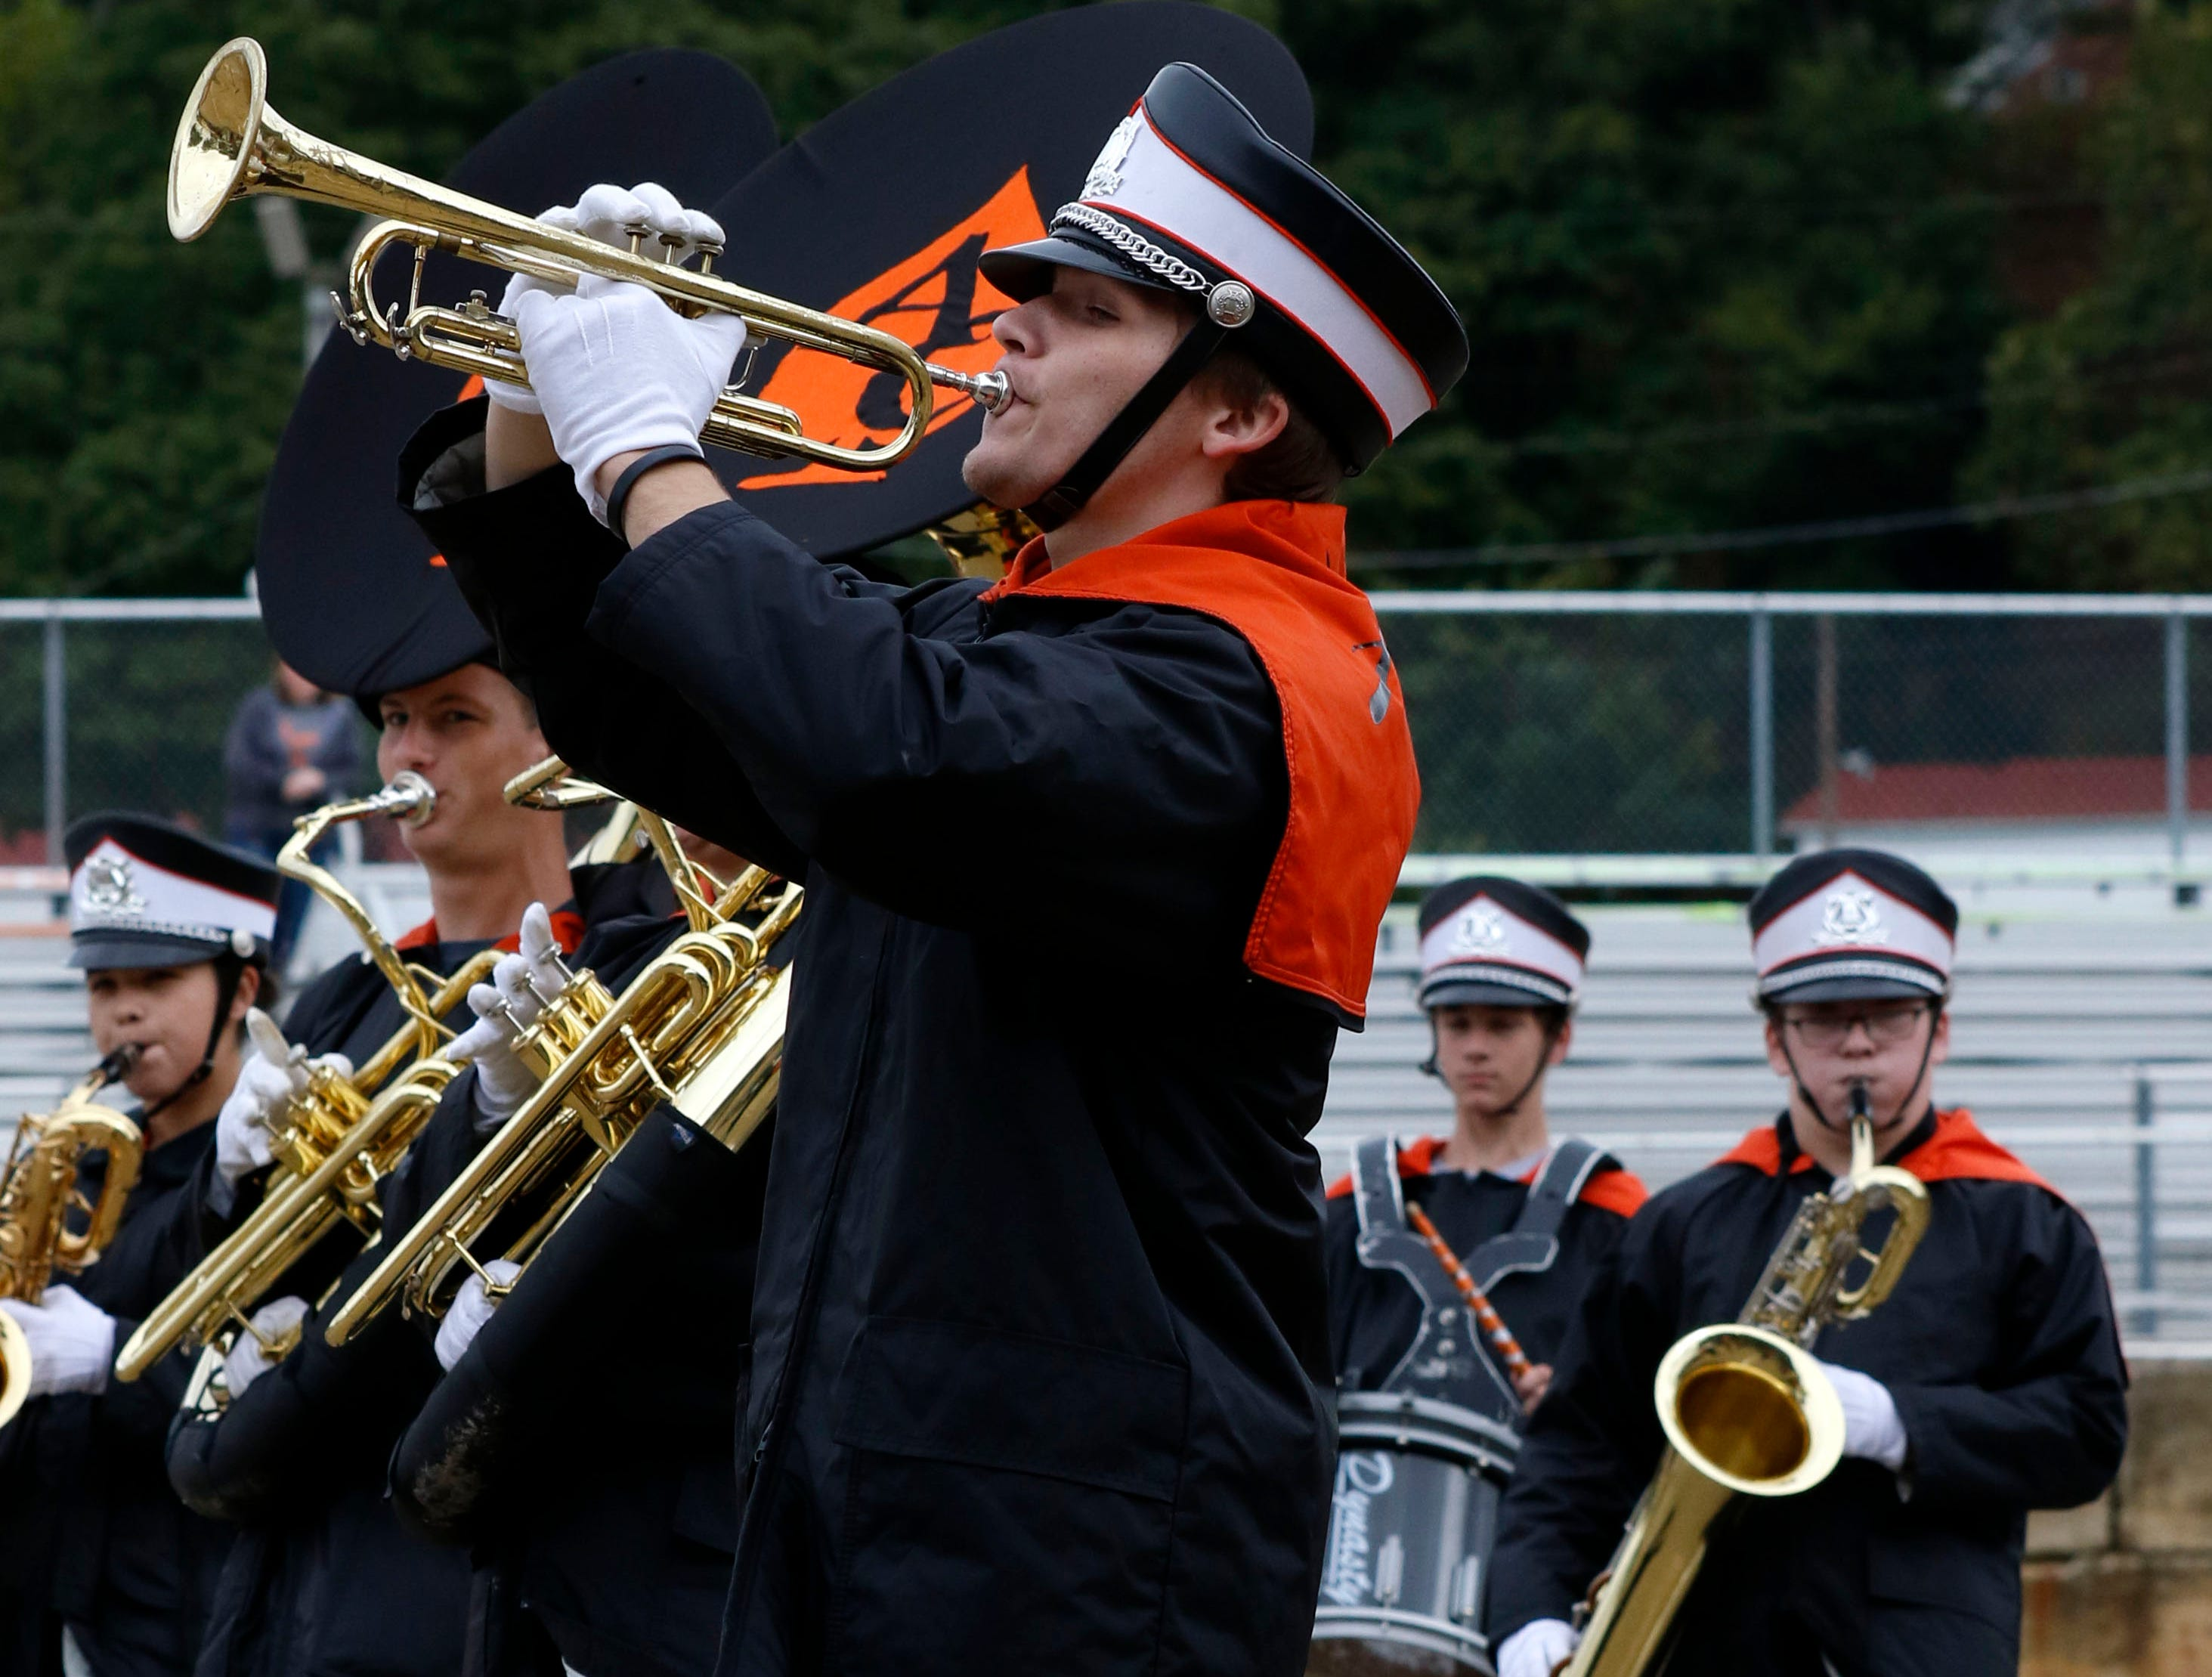 Eight county high school marching bands took part in the annual Parade of Bands Thursday, Oct. 11, 2018, at Fairfield County Fair in Lancaster.